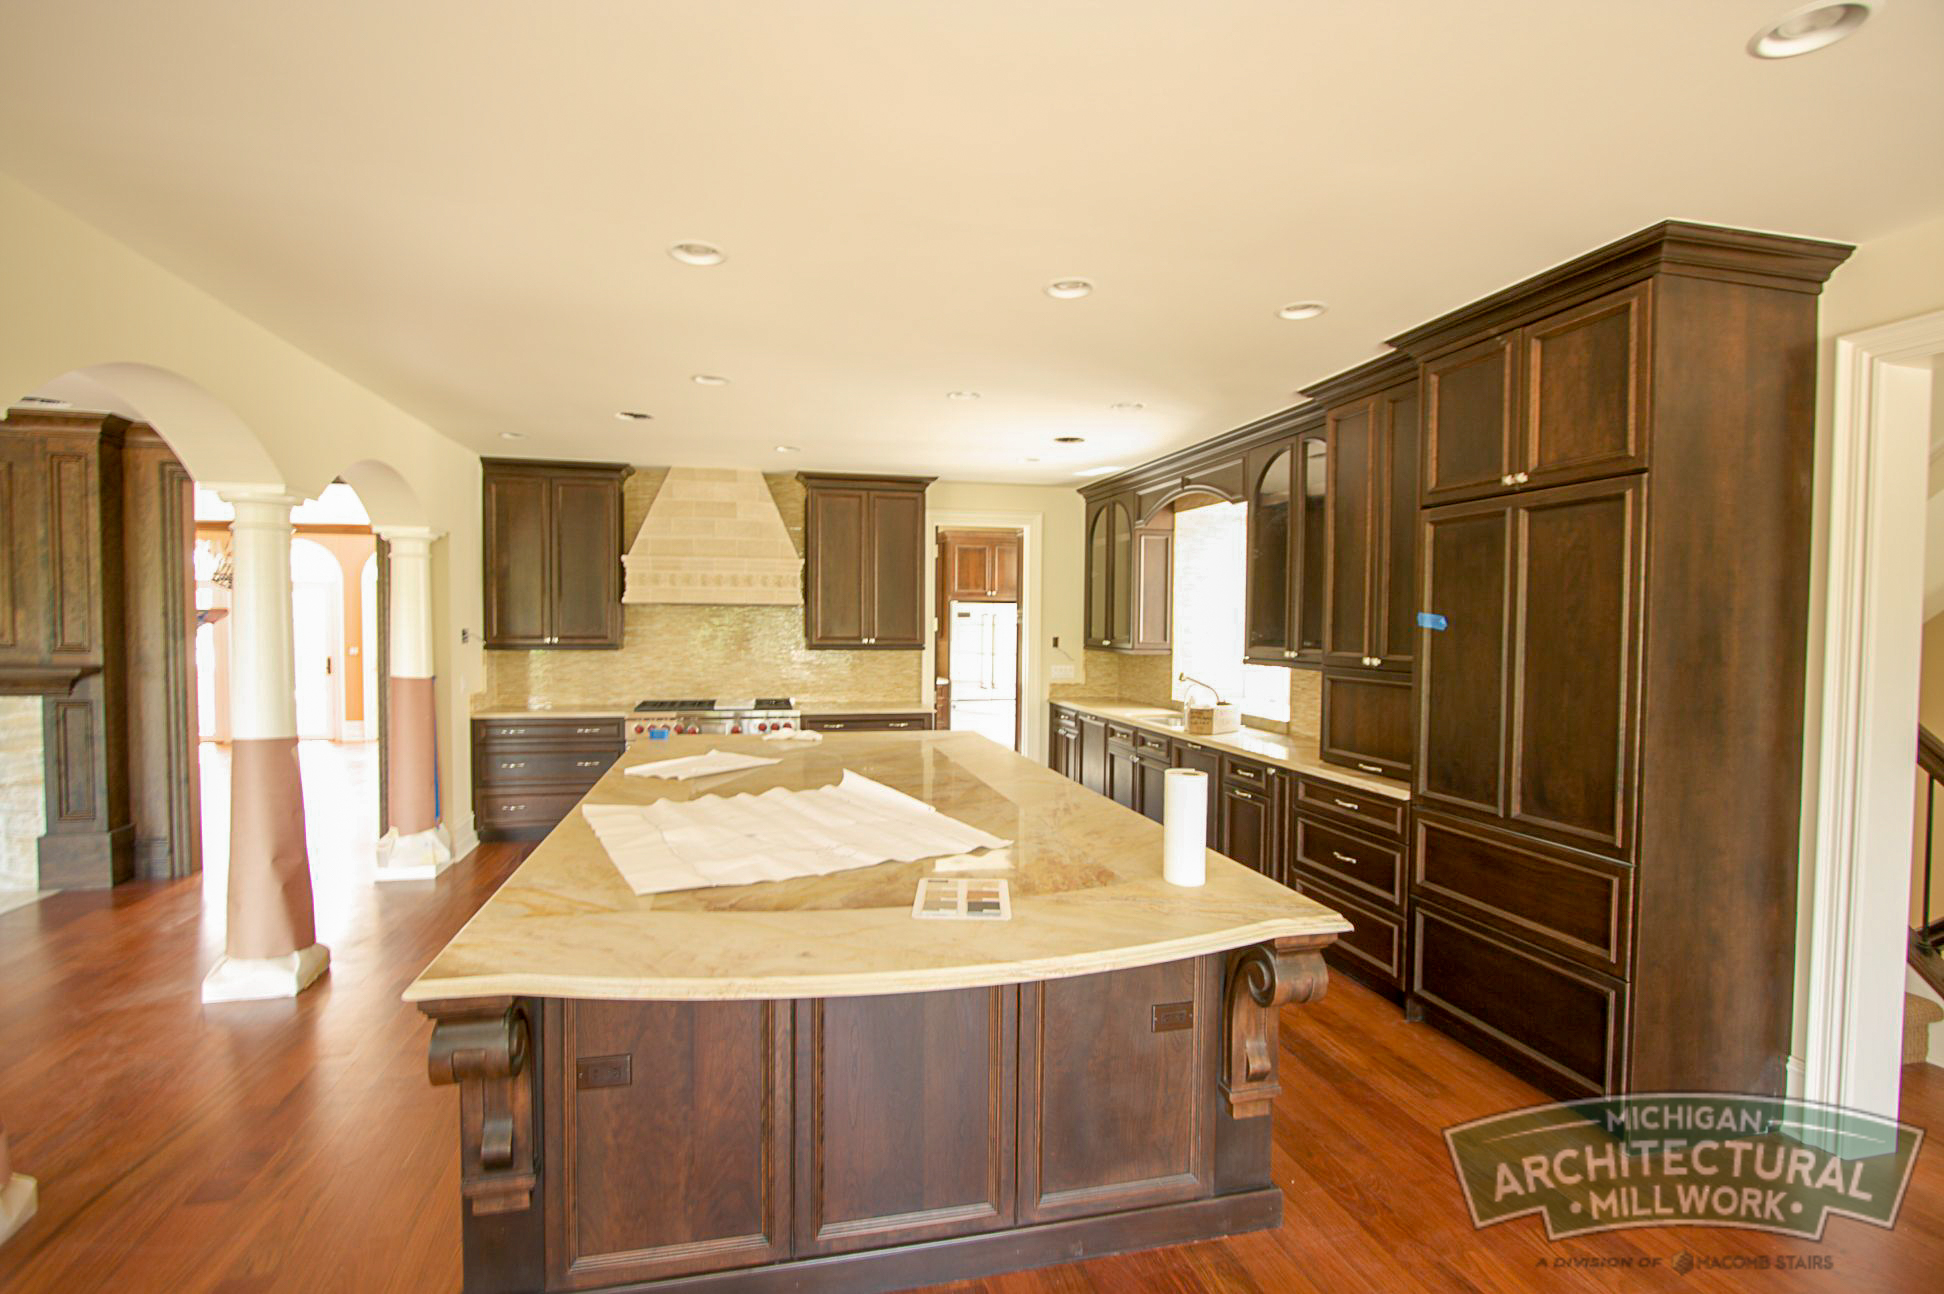 Michigan Architectural Millwork- Moulding and Millwork Photo-107.jpg